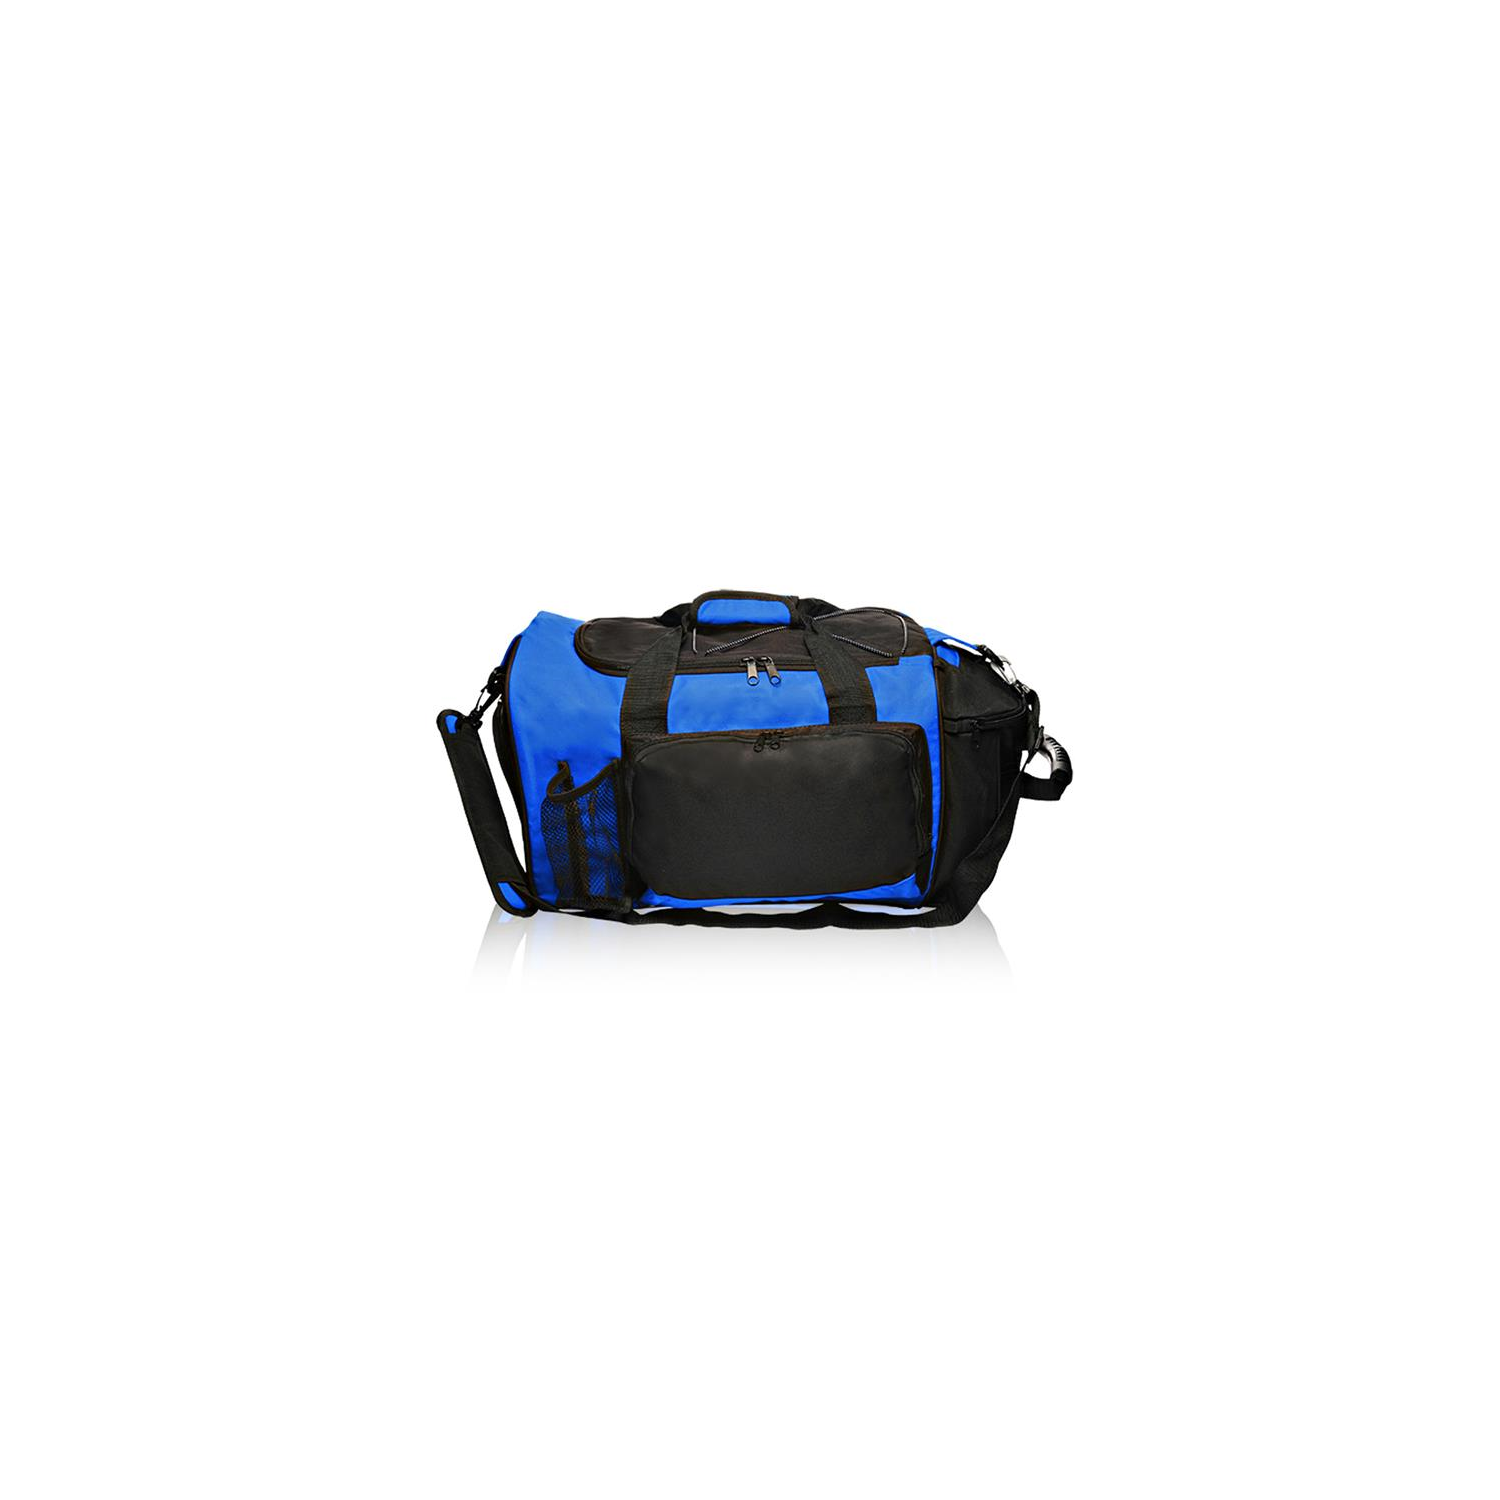 a699fb20b6 Natico Originals 60-DB-11BL Sports Duffel Bag Blue   Duffle Bags - Best Buy  Canada